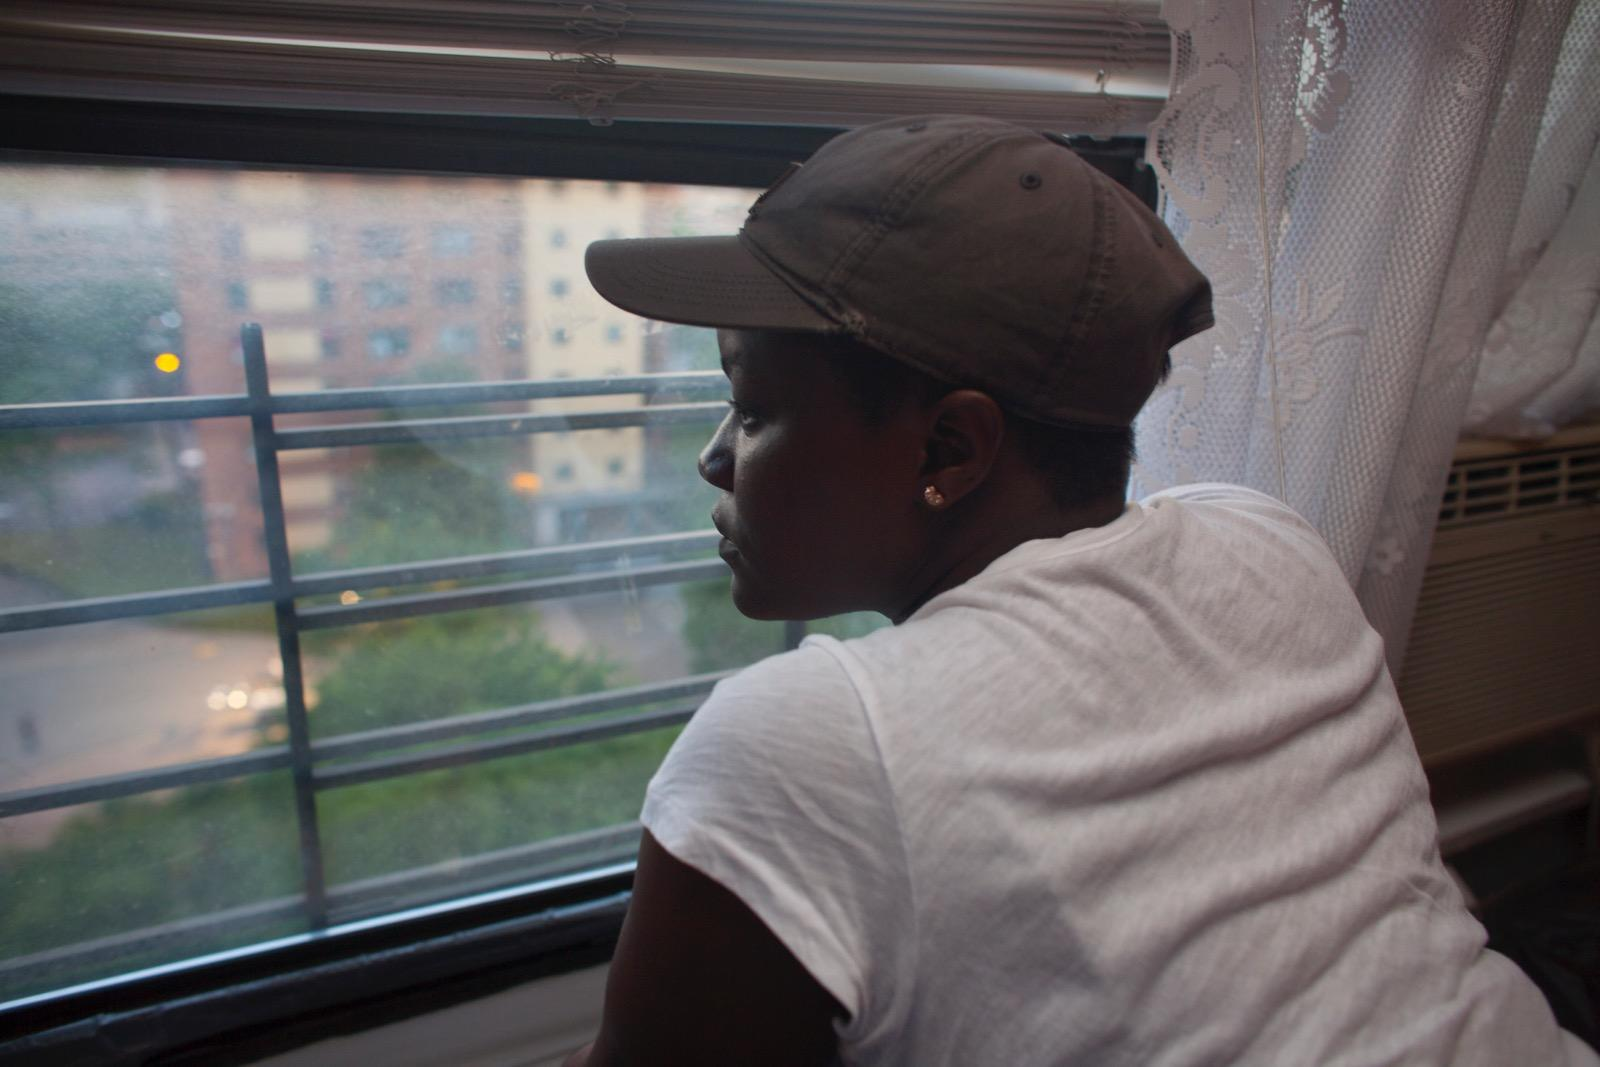 Shaquana looking out the window